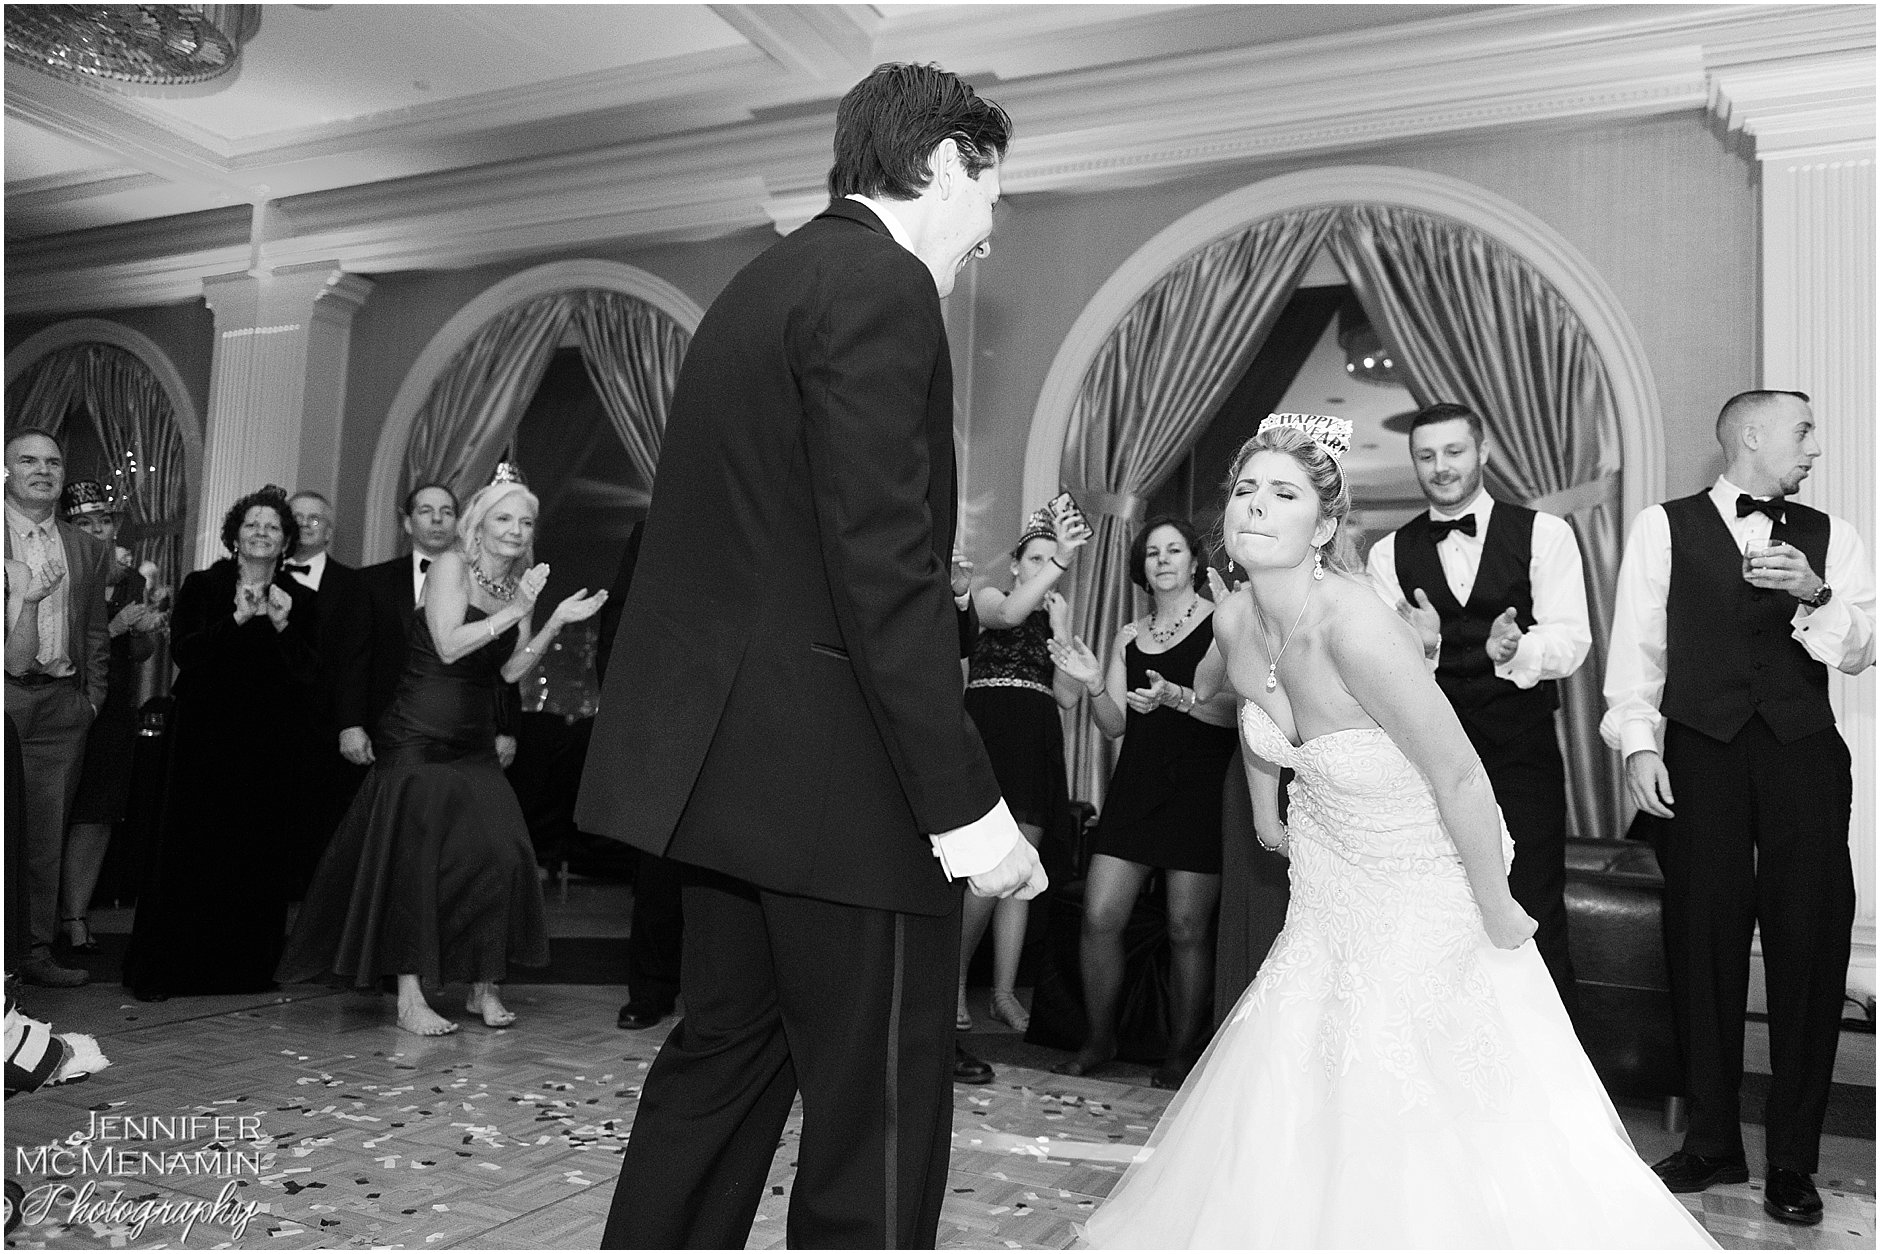 031-JohnsonBollinger_03172bw_Jennifer-McMenamin-Photography-Royal-Sonesta-Harbor-Court-wedding